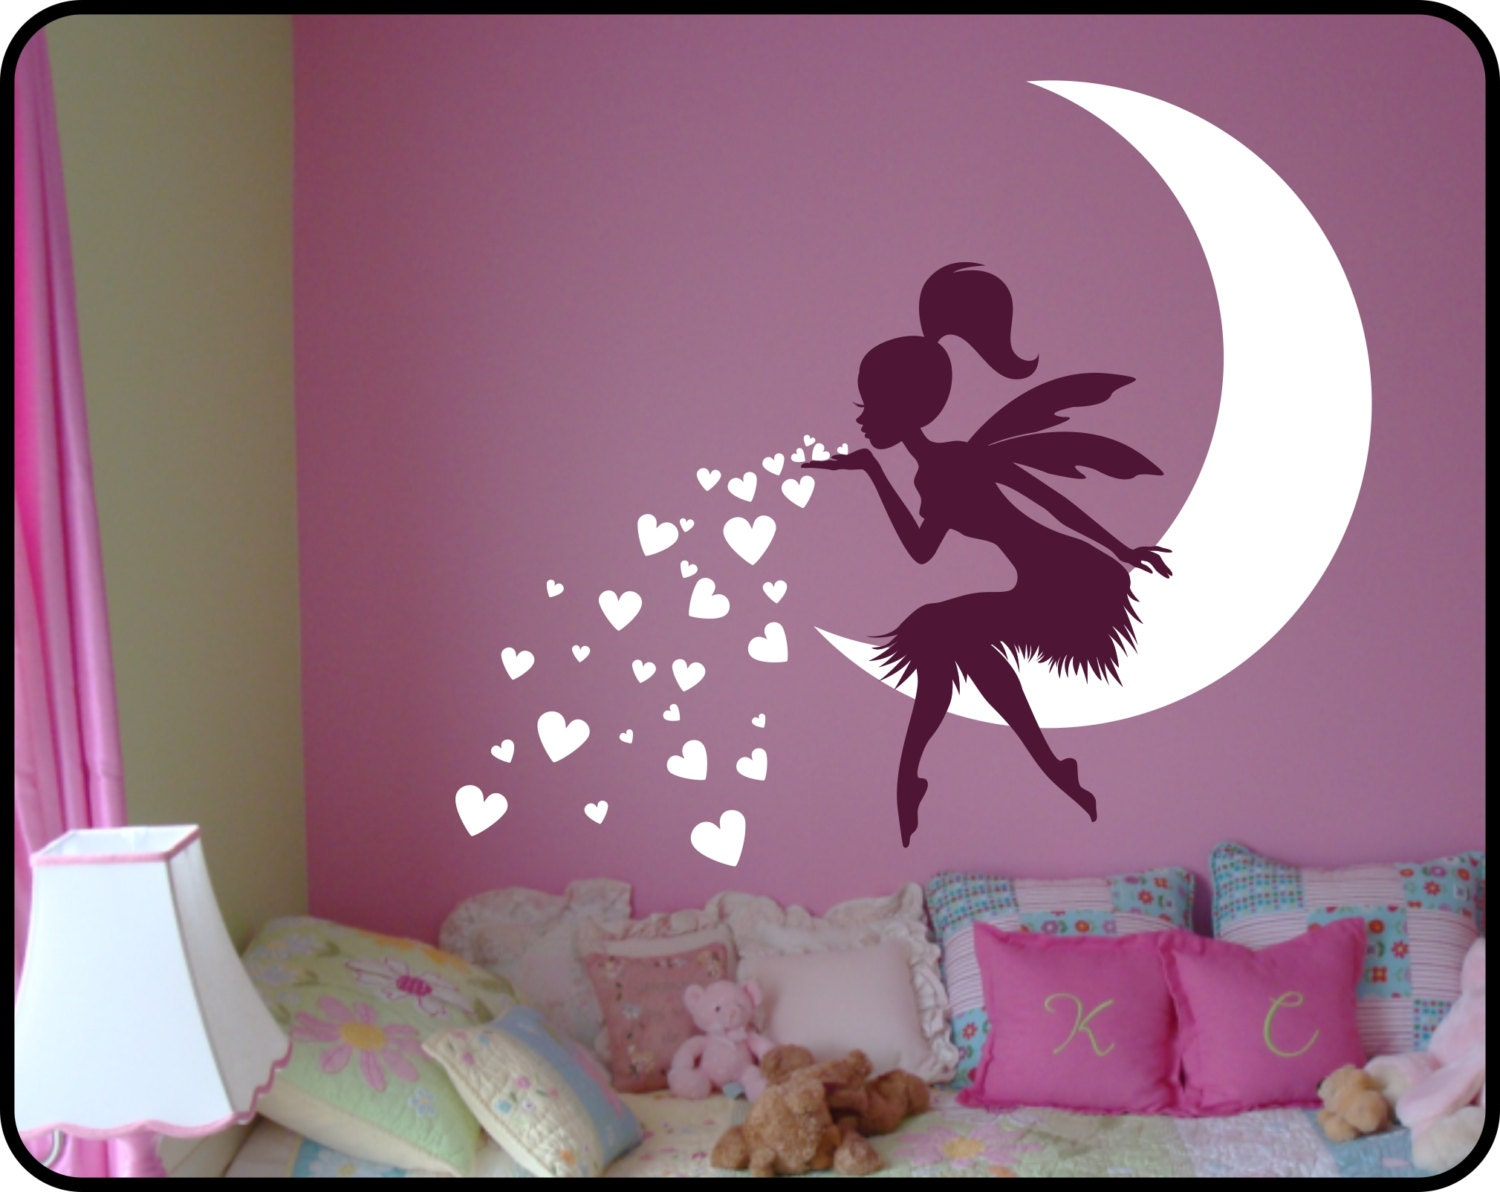 Wall Stencils Ireland Images Home Wall Decoration Ideas - Nursery wall decals ireland